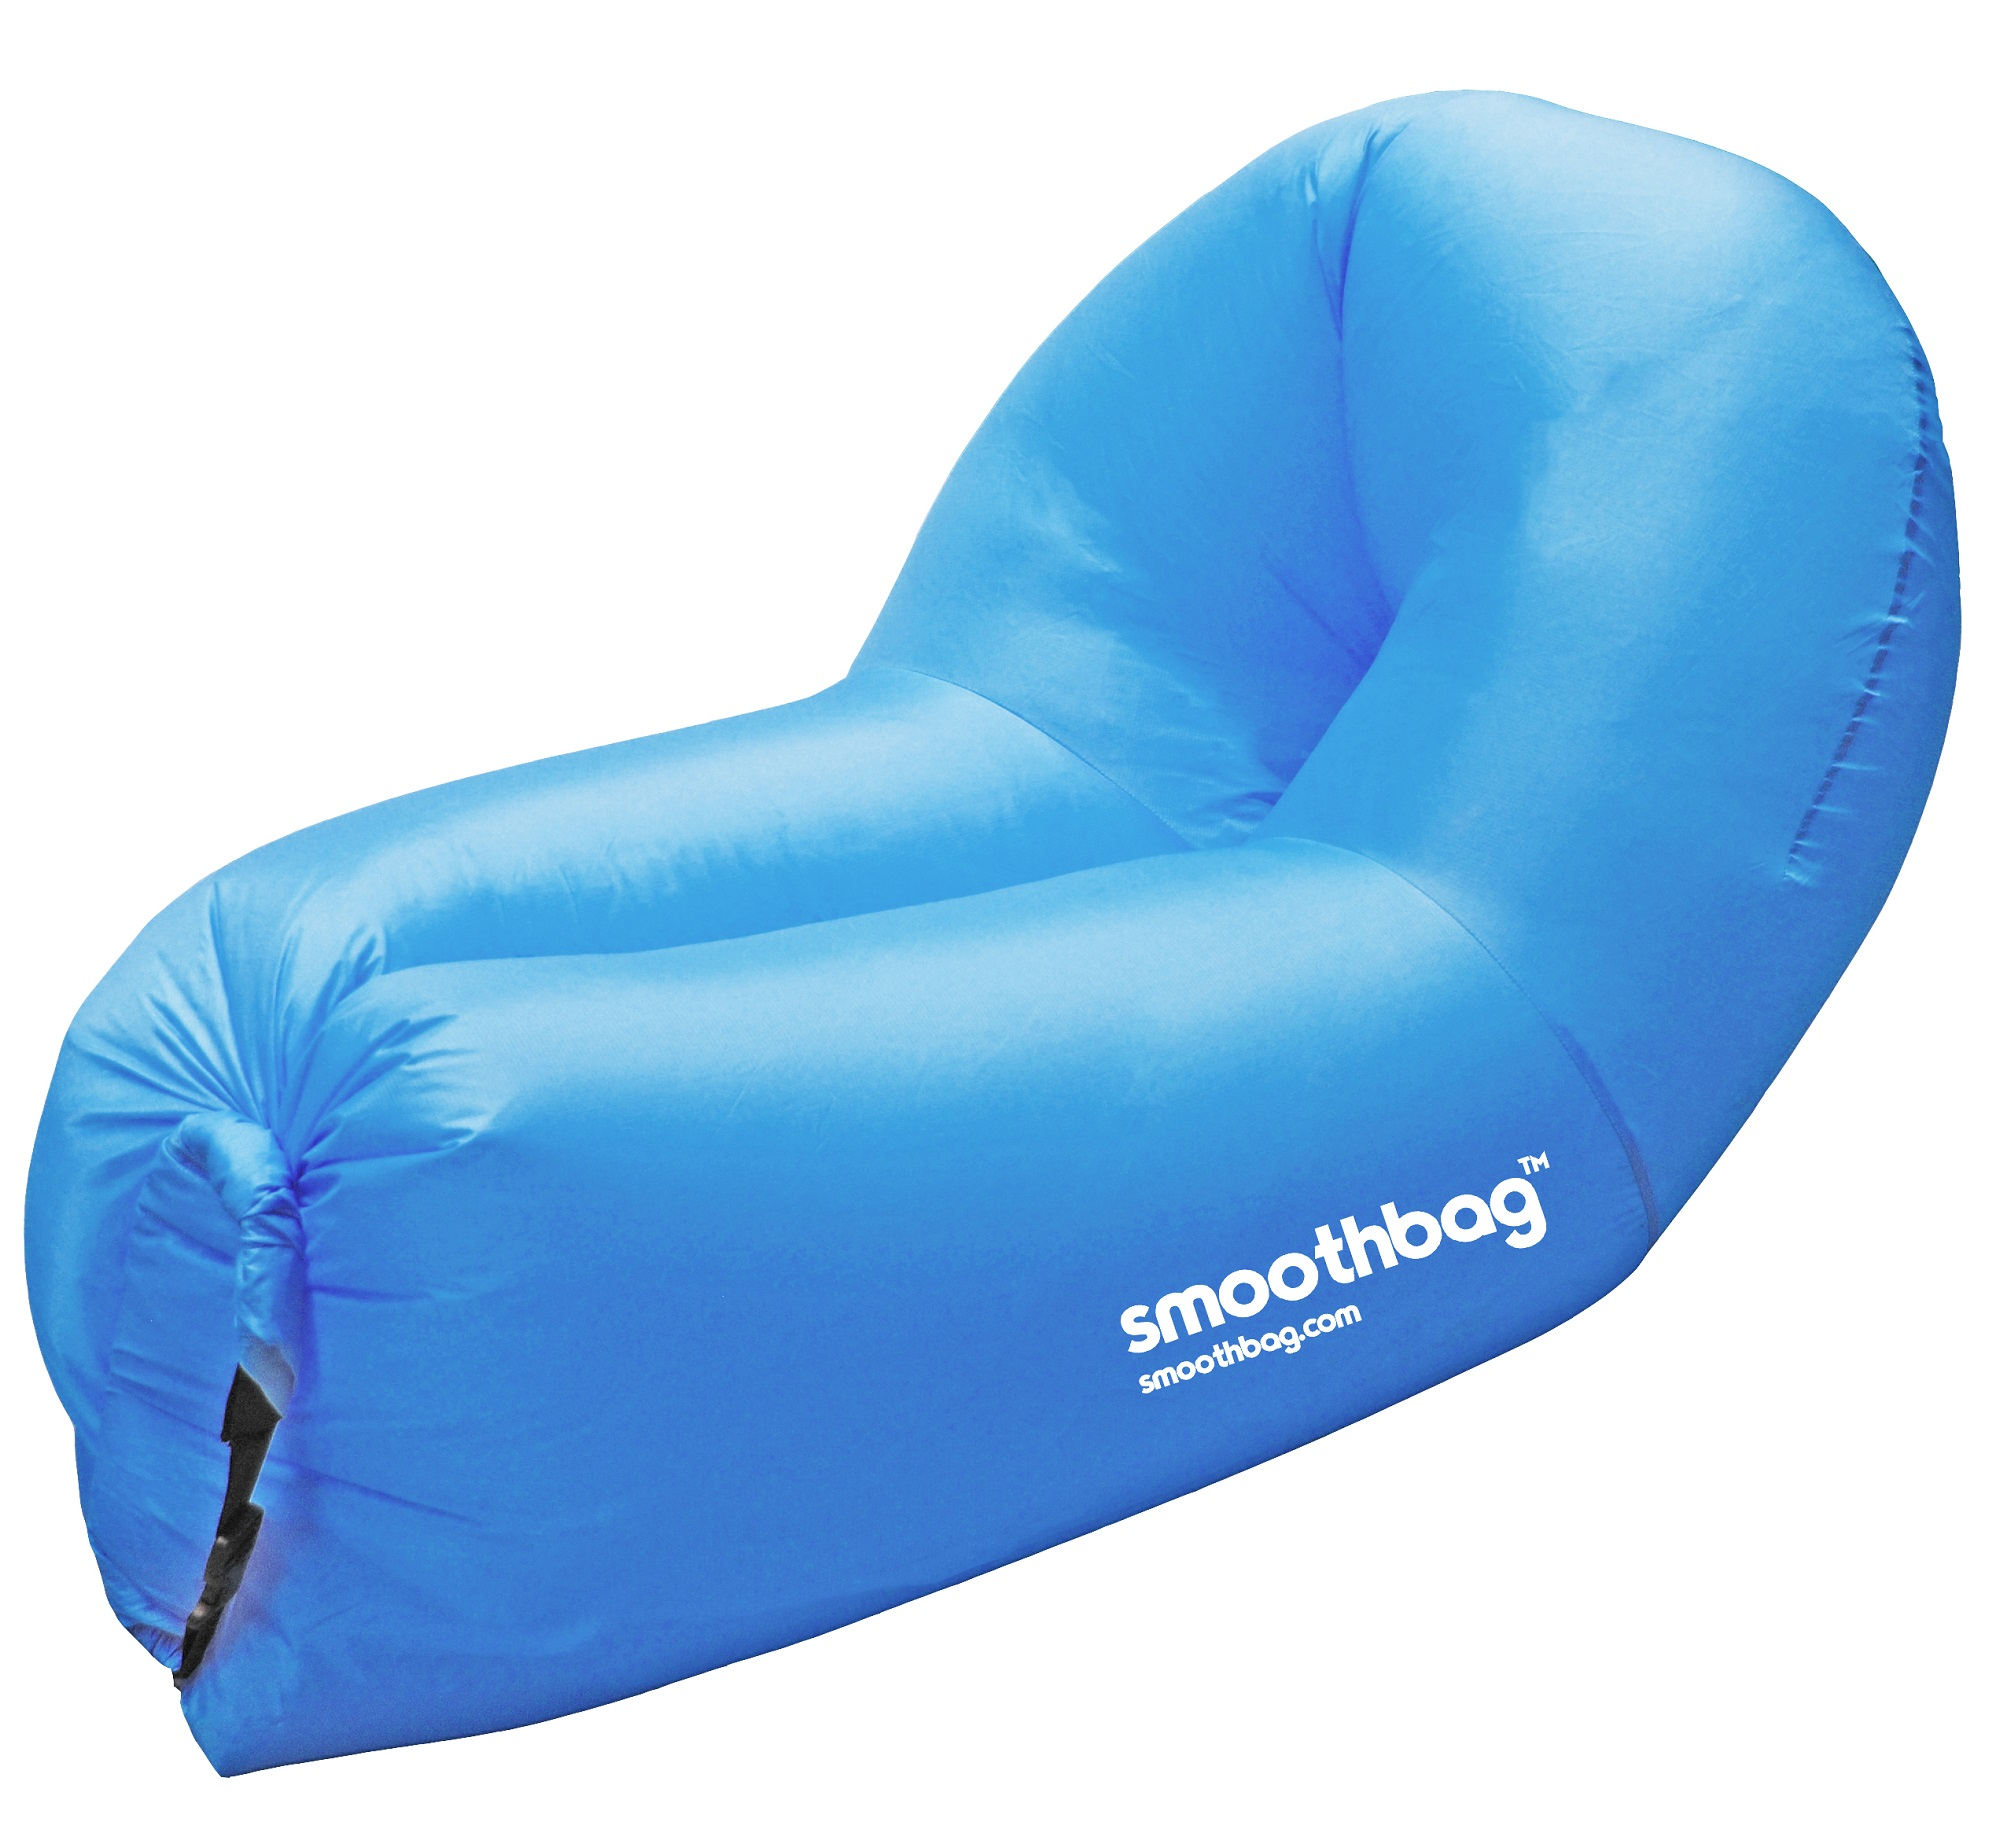 SMOOTHBAG SBPBLUE BLUE 2 IN 1 SOFA & CHAIR INFLATABLE LOUNGER